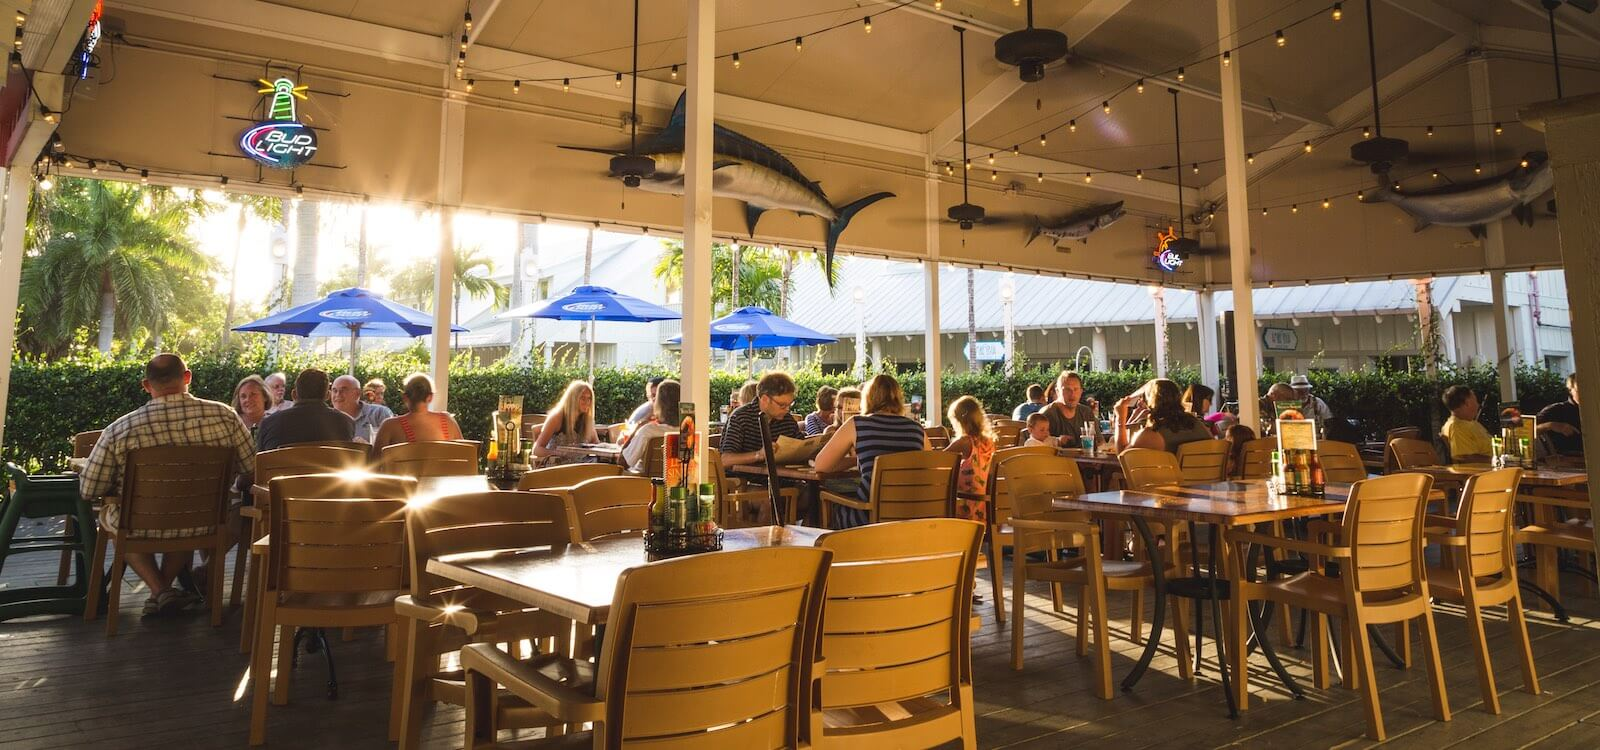 Mustdo Fort Myers Sanibel And Capitva Island Outdoor Dining Family Friendly